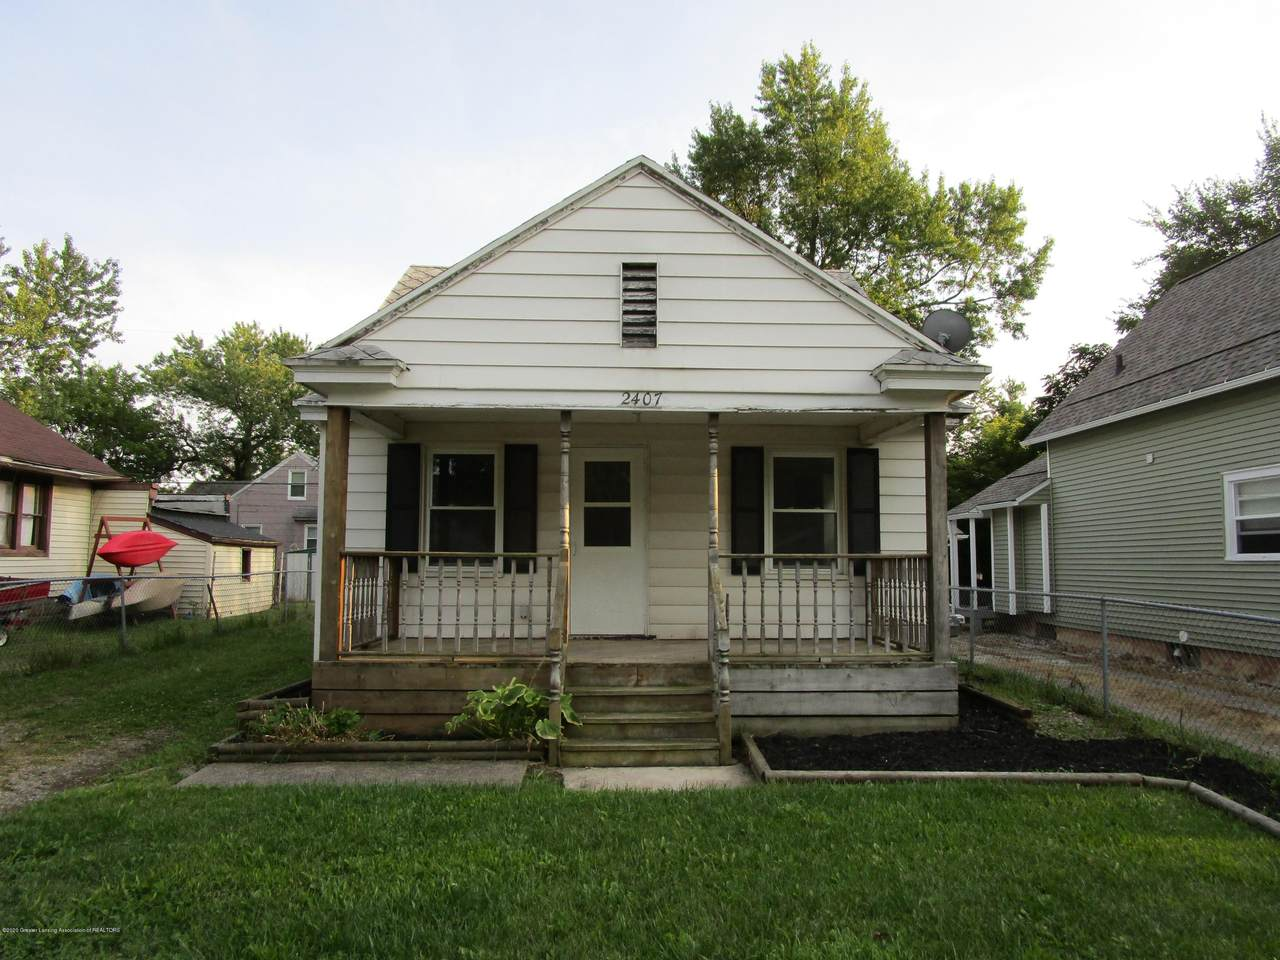 2407 Kalamazoo Street - Photo 1